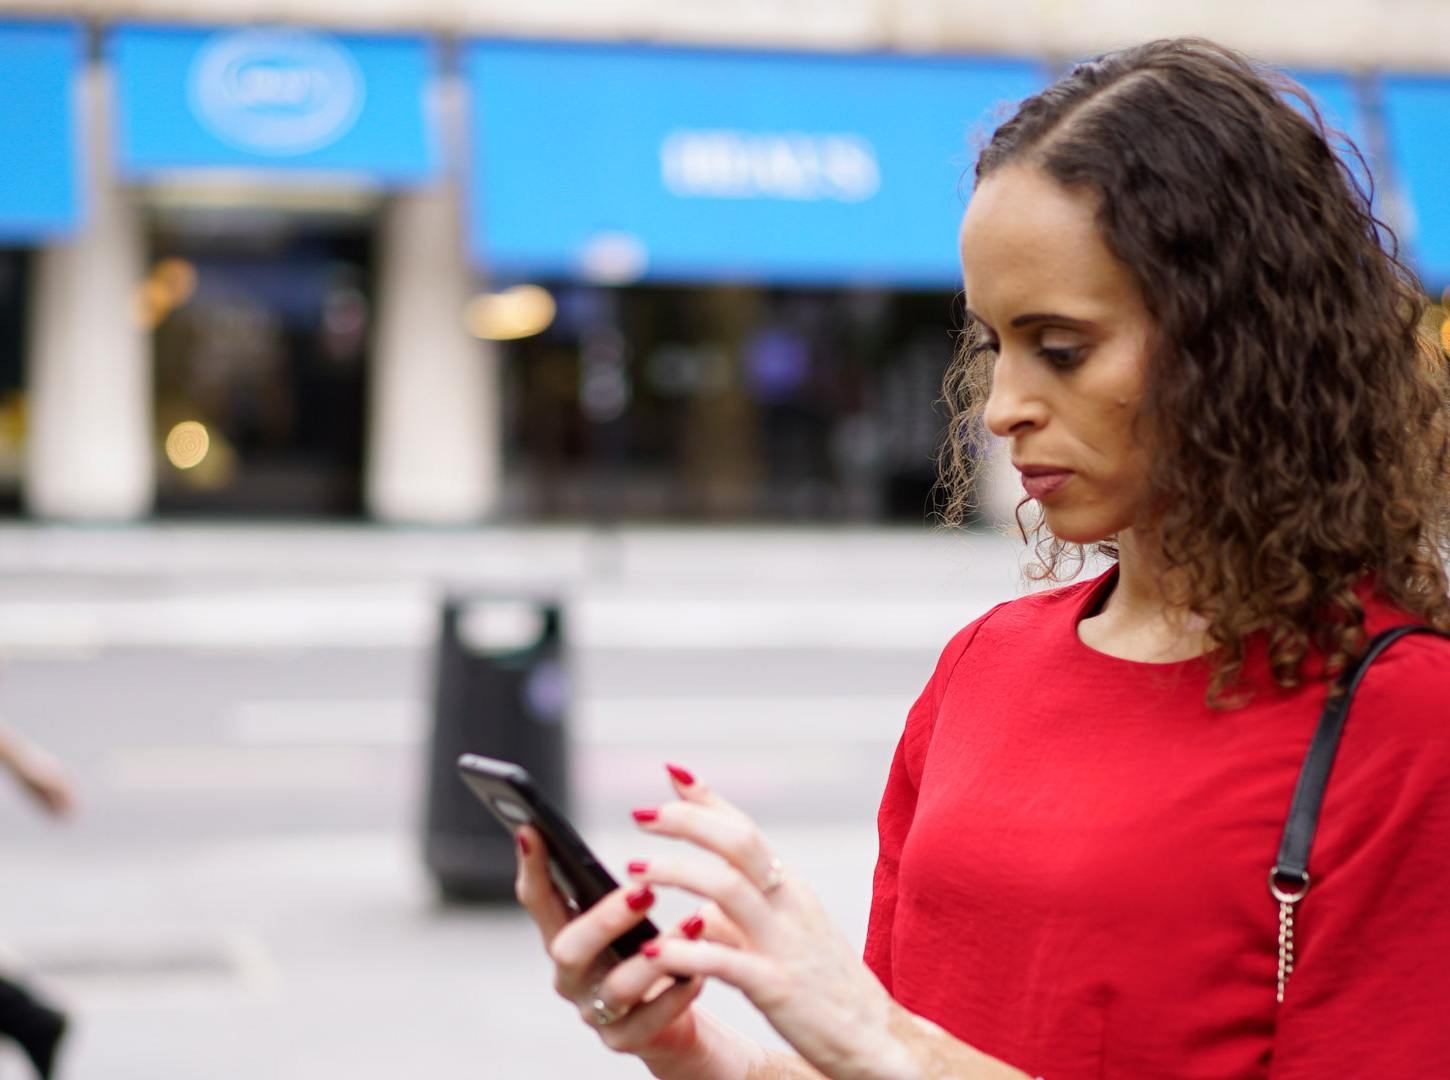 A woman with wavy, shoulder-length hair in a red top using a smartphone on the street.